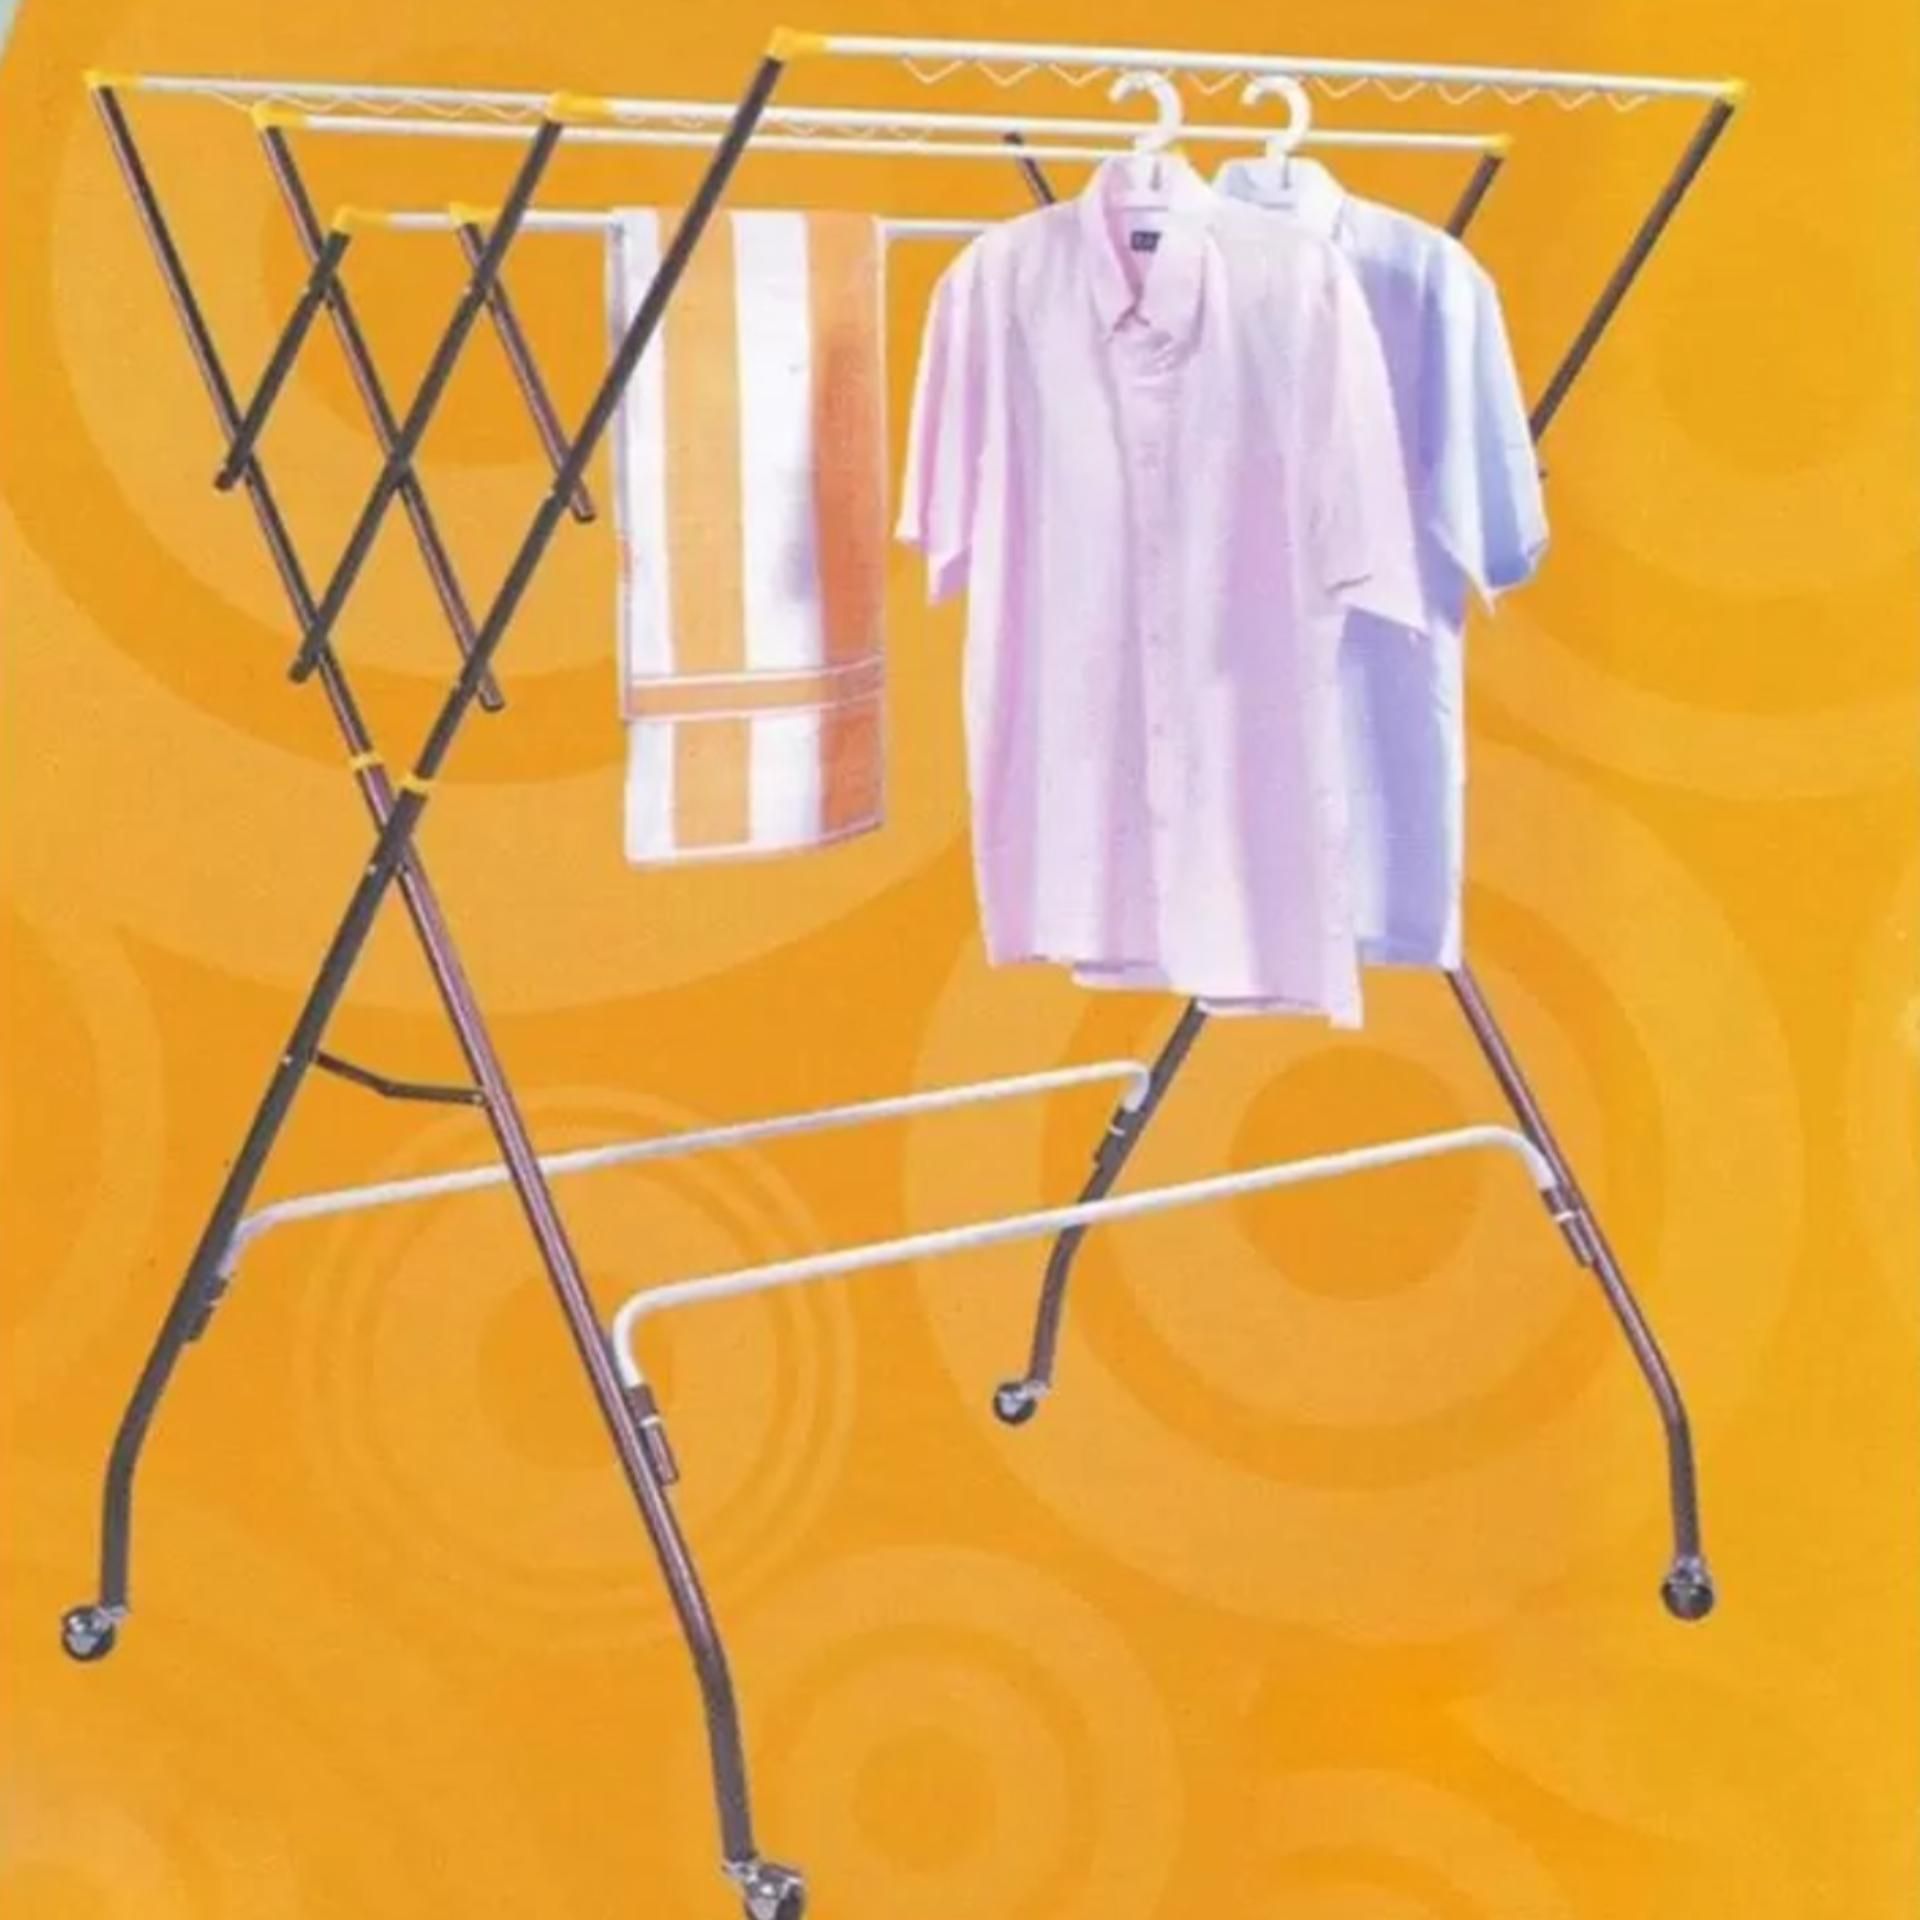 3V Anti-Rust Cloth Hanger Drying Rack Outdoor Clothes Hanger Copper Co